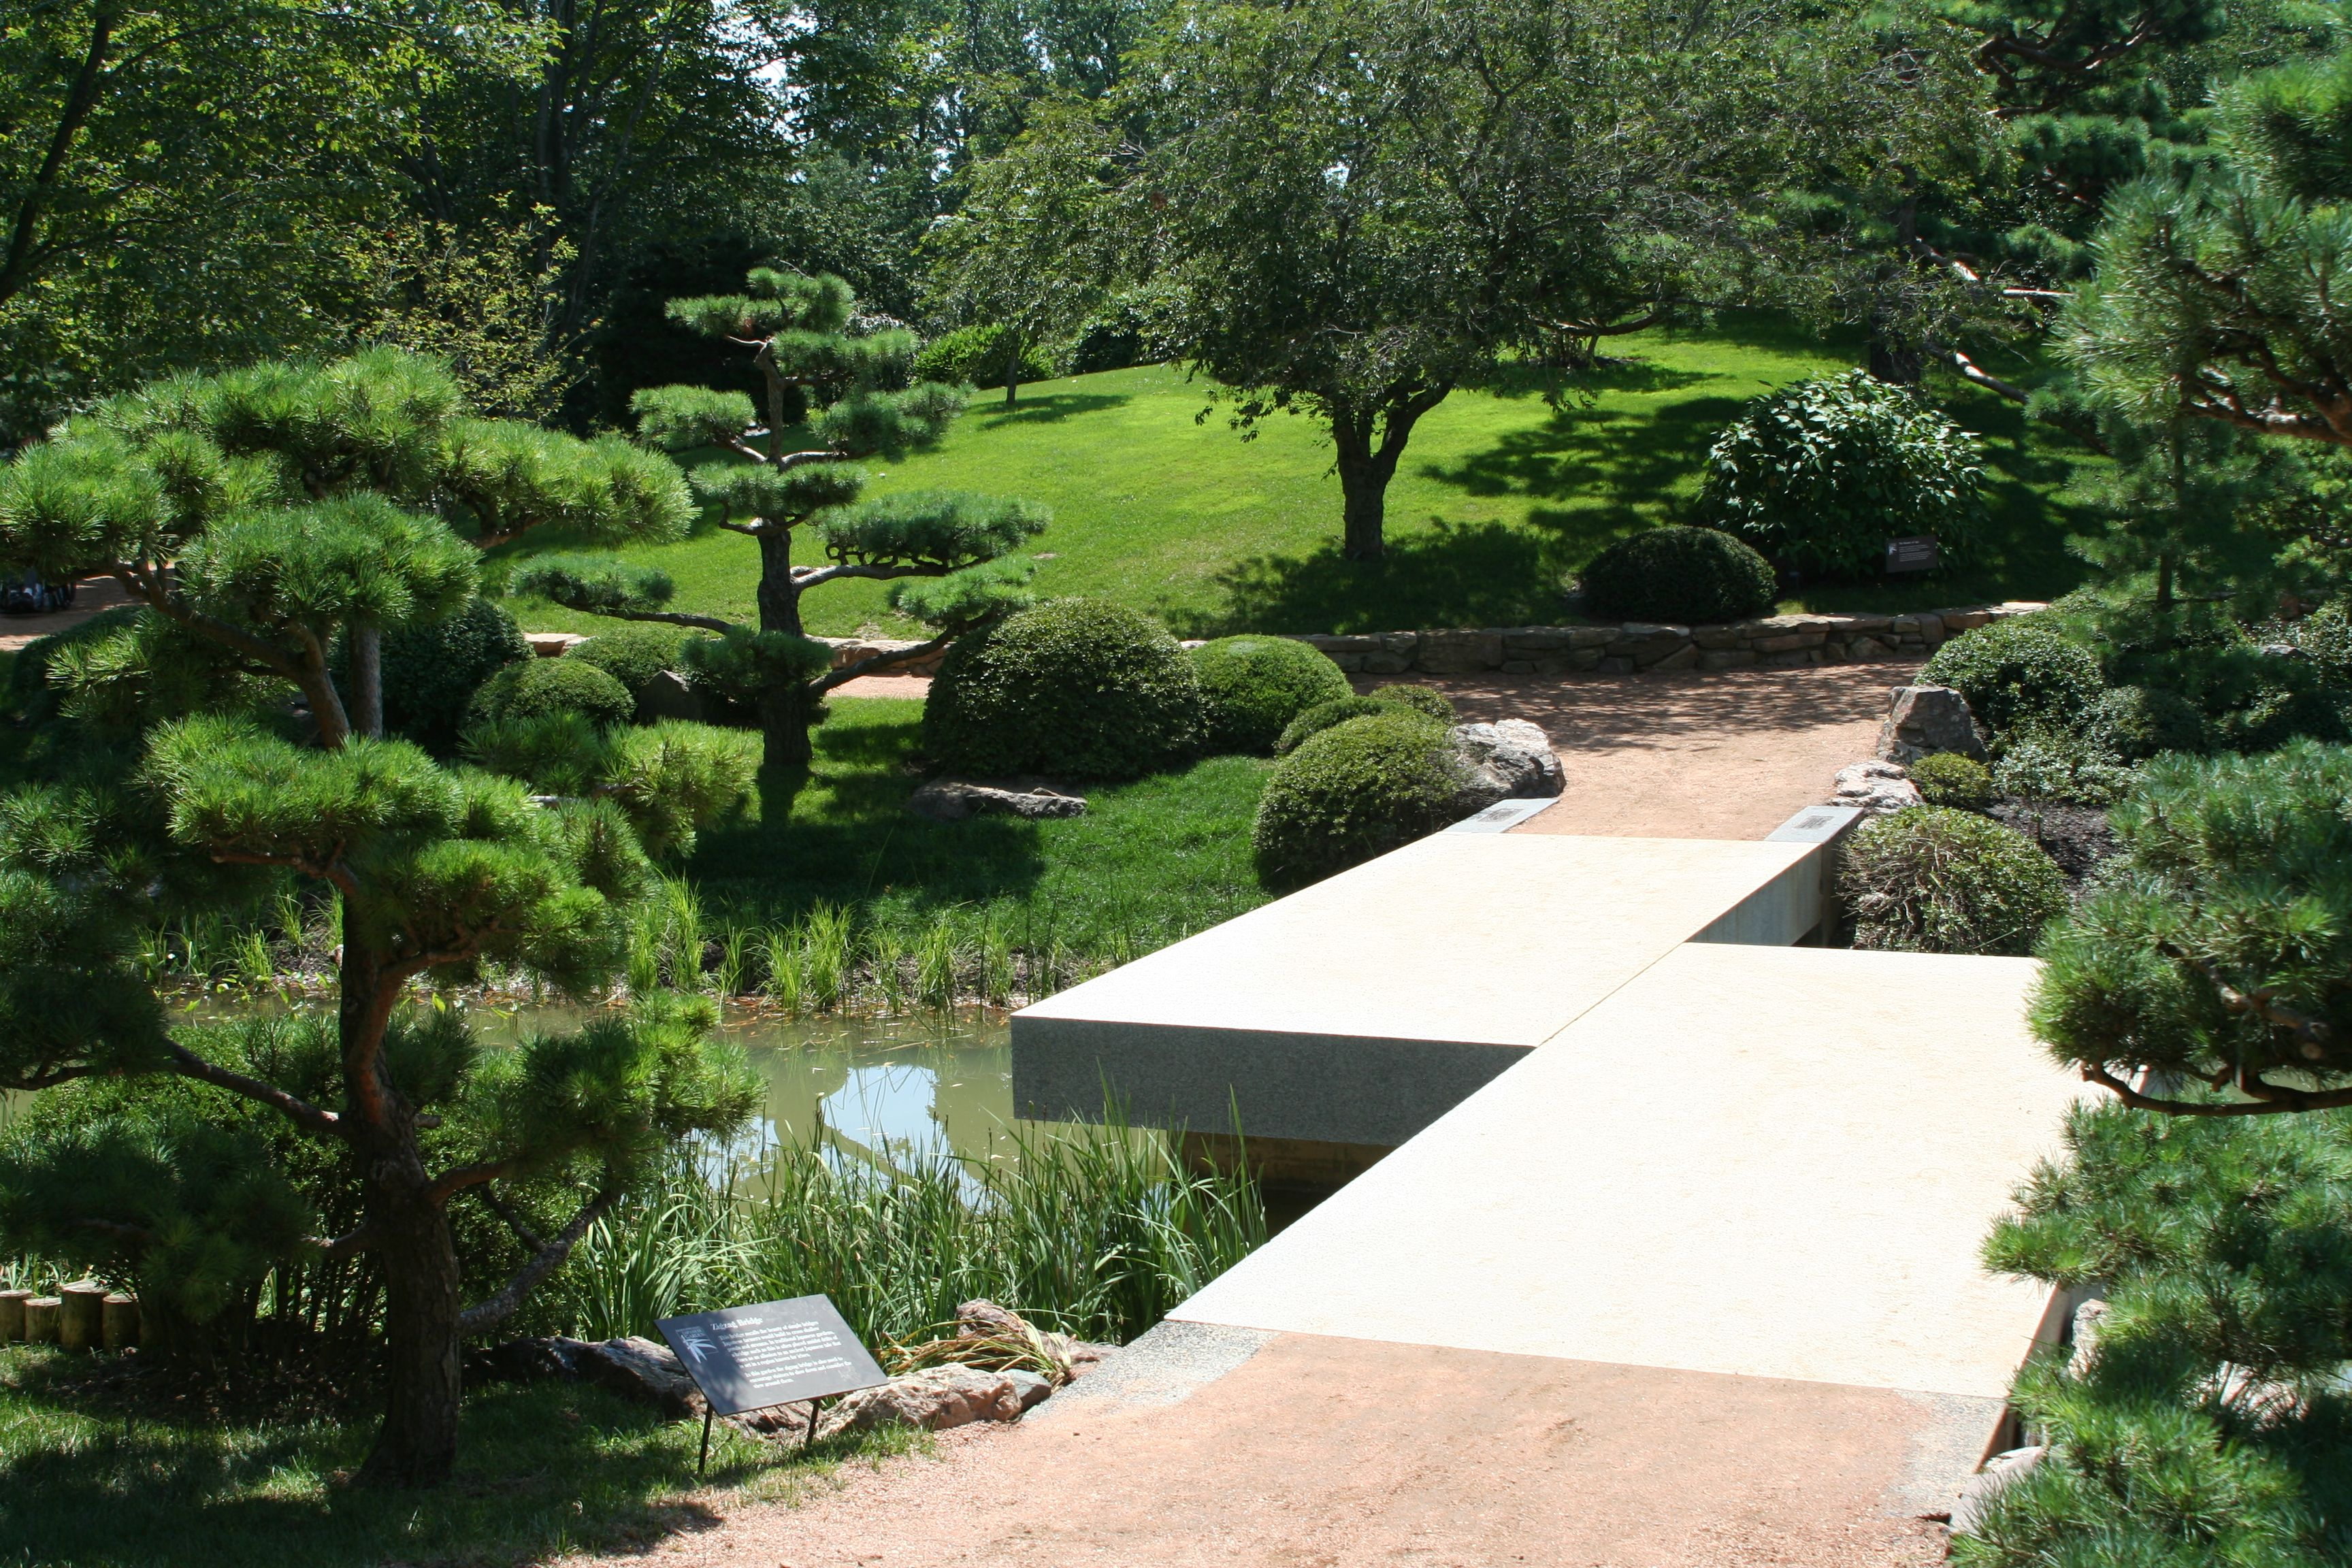 35881cd0aac380c056705be8a256e813 - Town And Country Gardens Algonquin Il